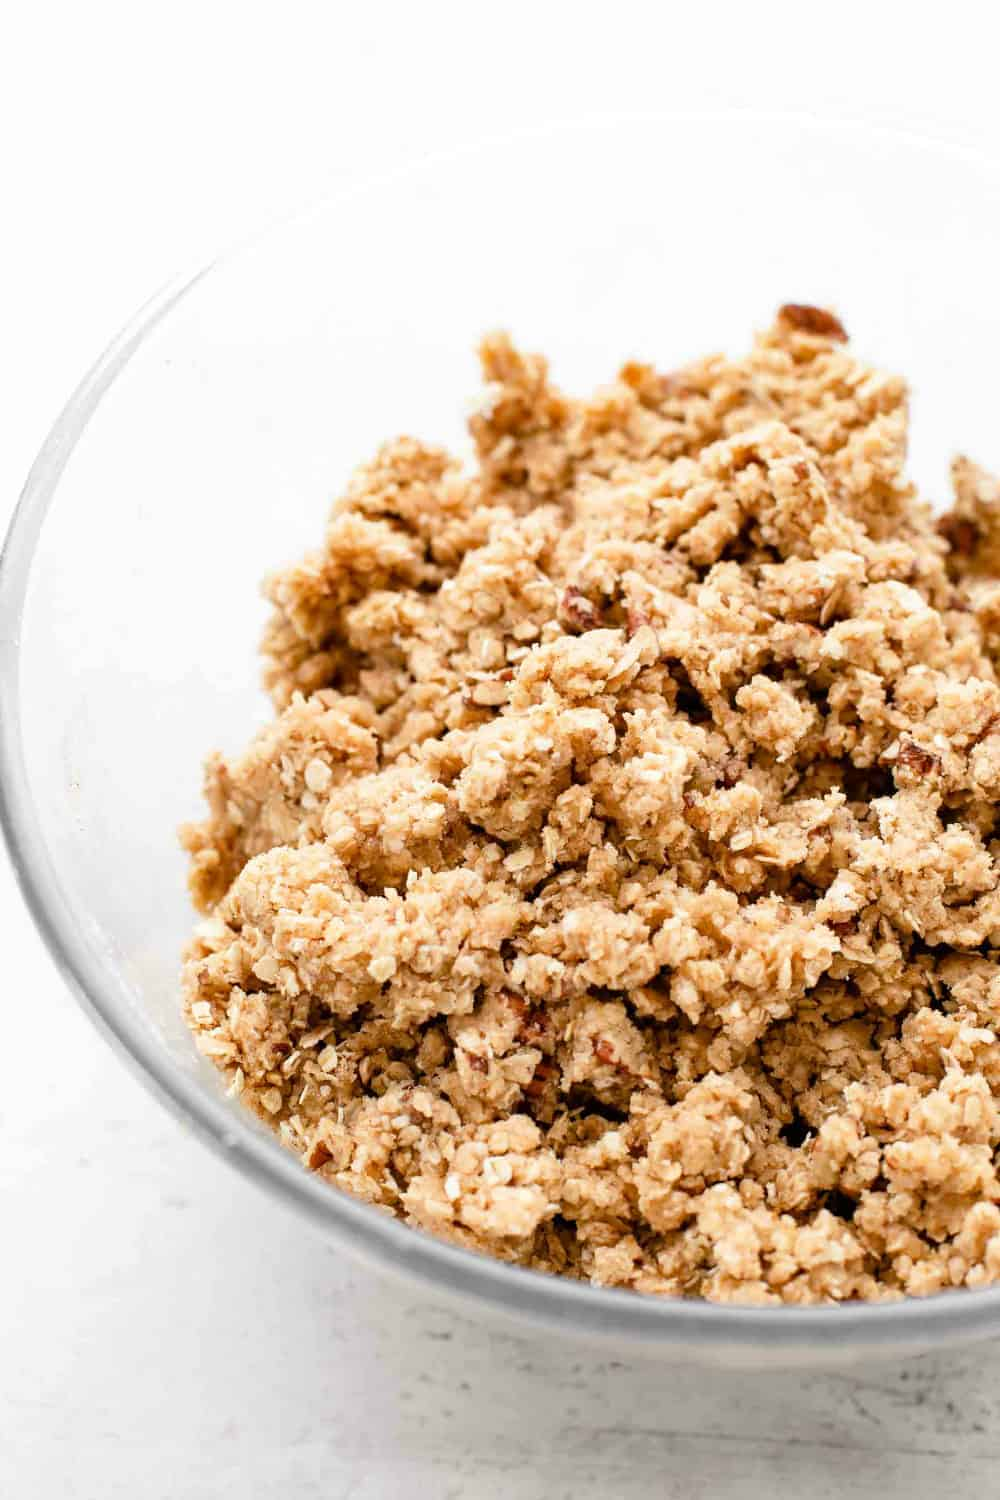 Crumble topping for apple pie bars in a glass mixing bowl